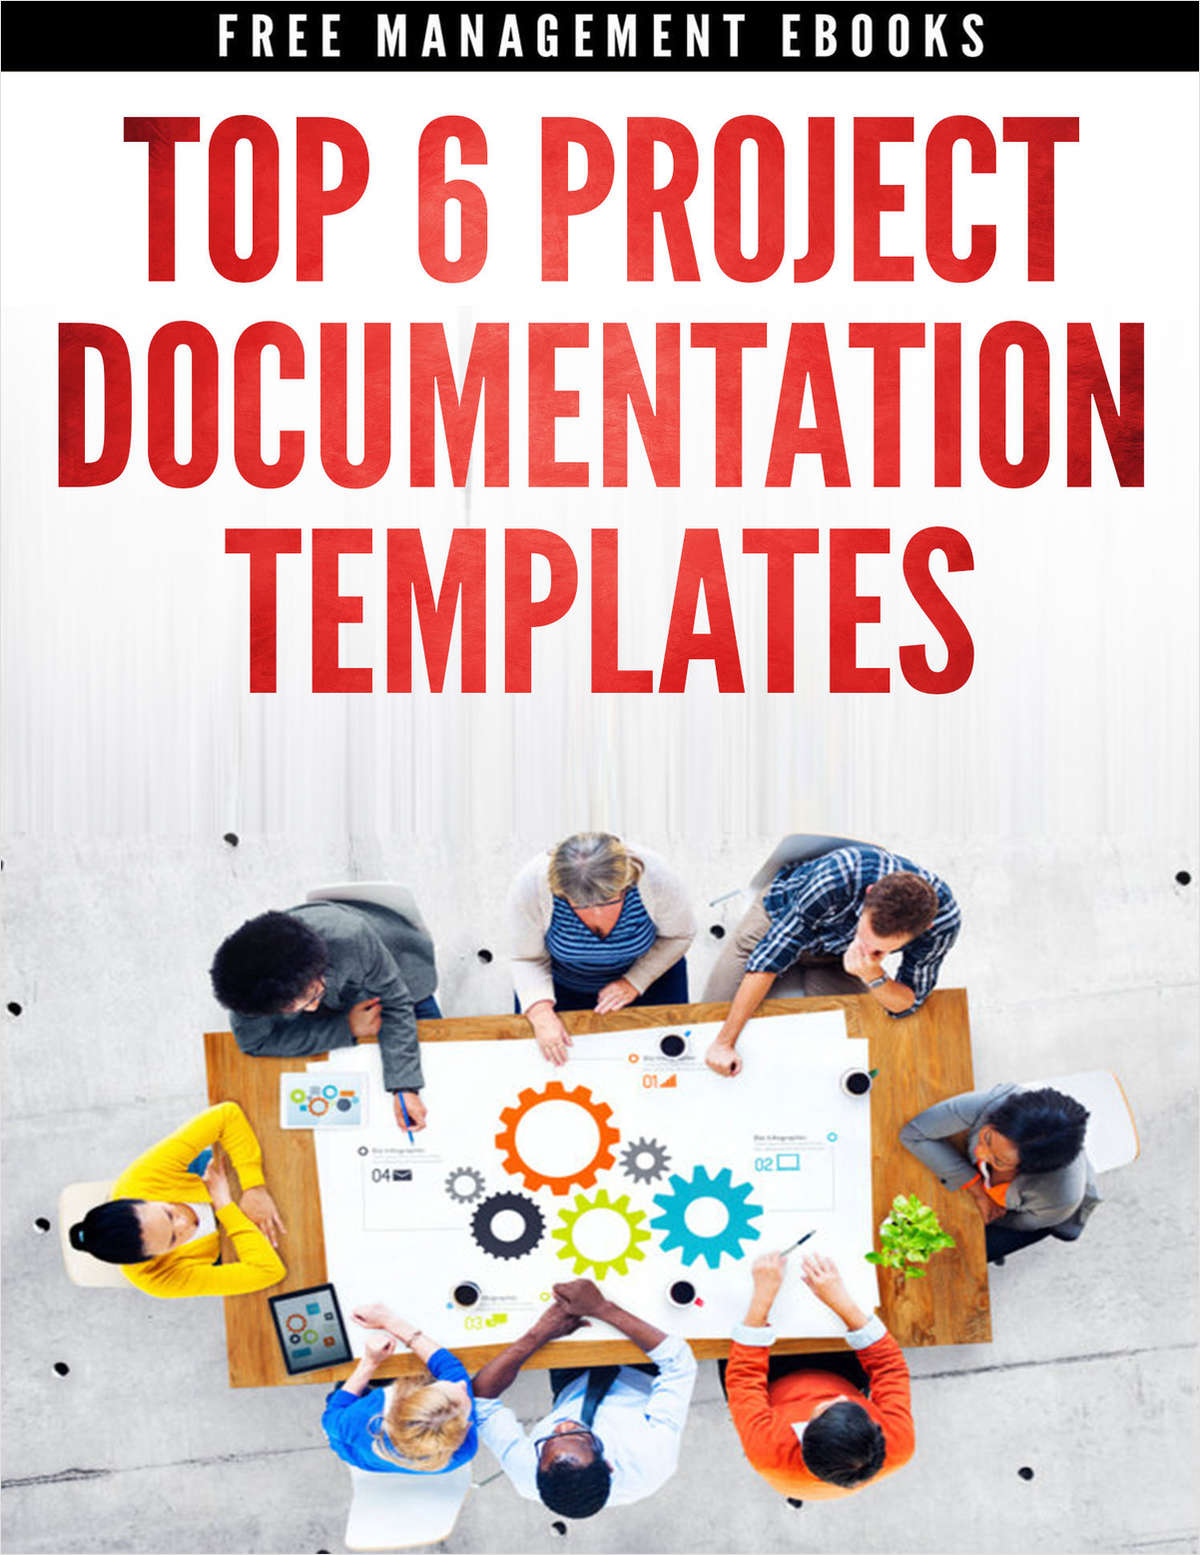 Top 6 Project Documentation Templates